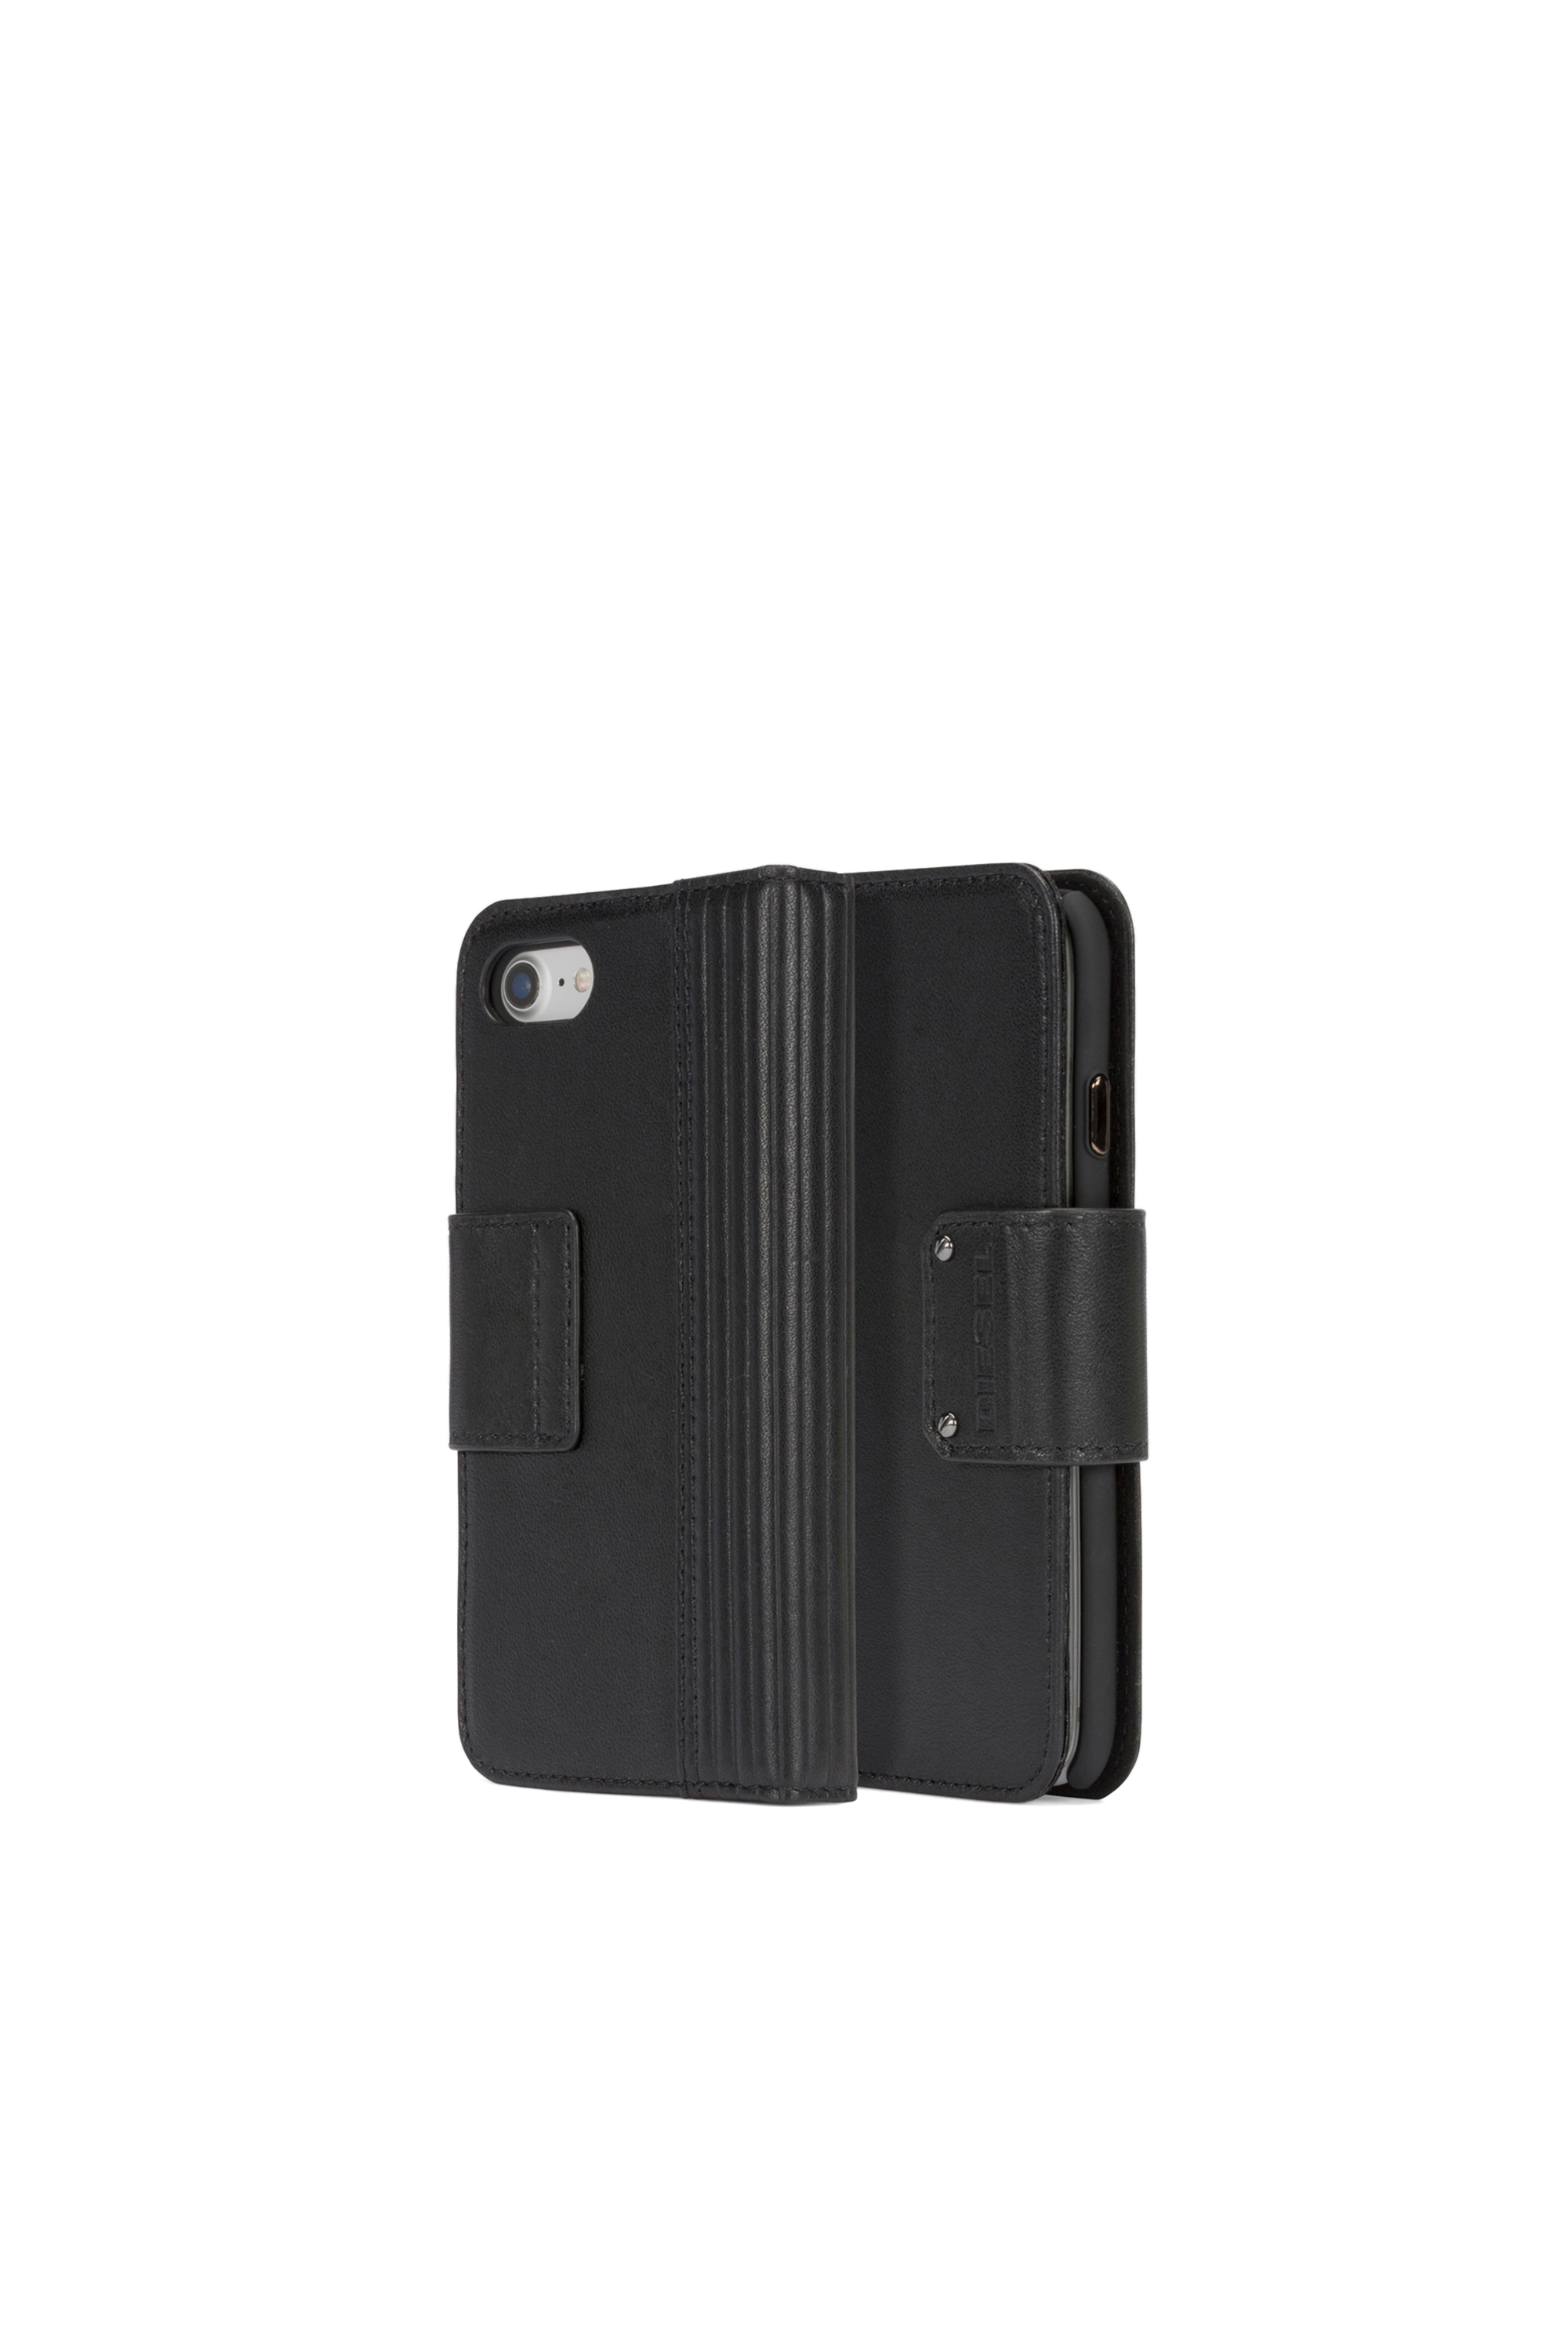 Diesel - BLACK LINED LEATHER IPHONE 8/7 FOLIO,  - Flip covers - Image 1